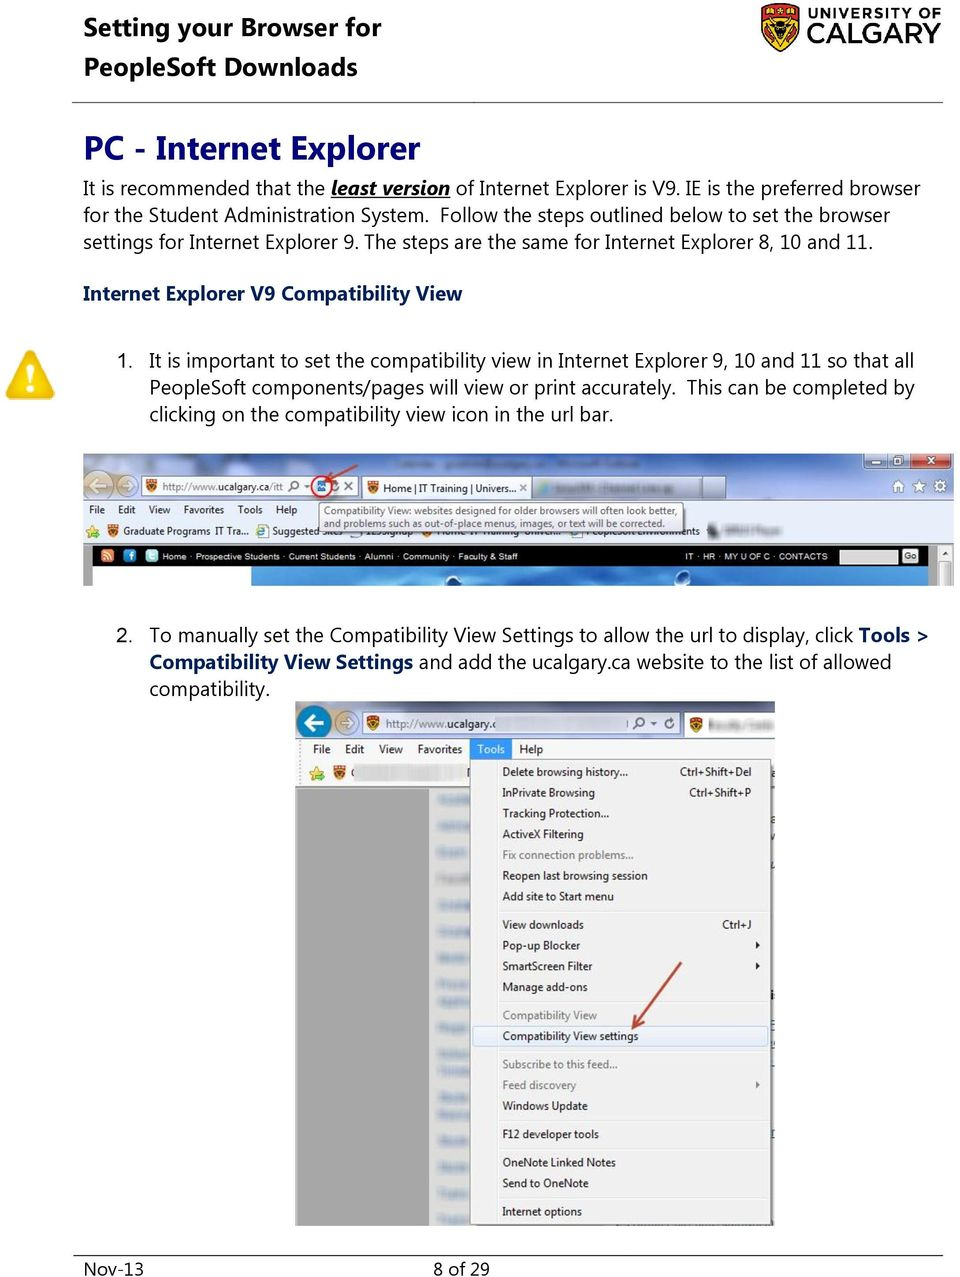 It is important to set the compatibility view in Internet Explorer 9, 10 and 11 so that all PeopleSoft components/pages will view or print accurately.